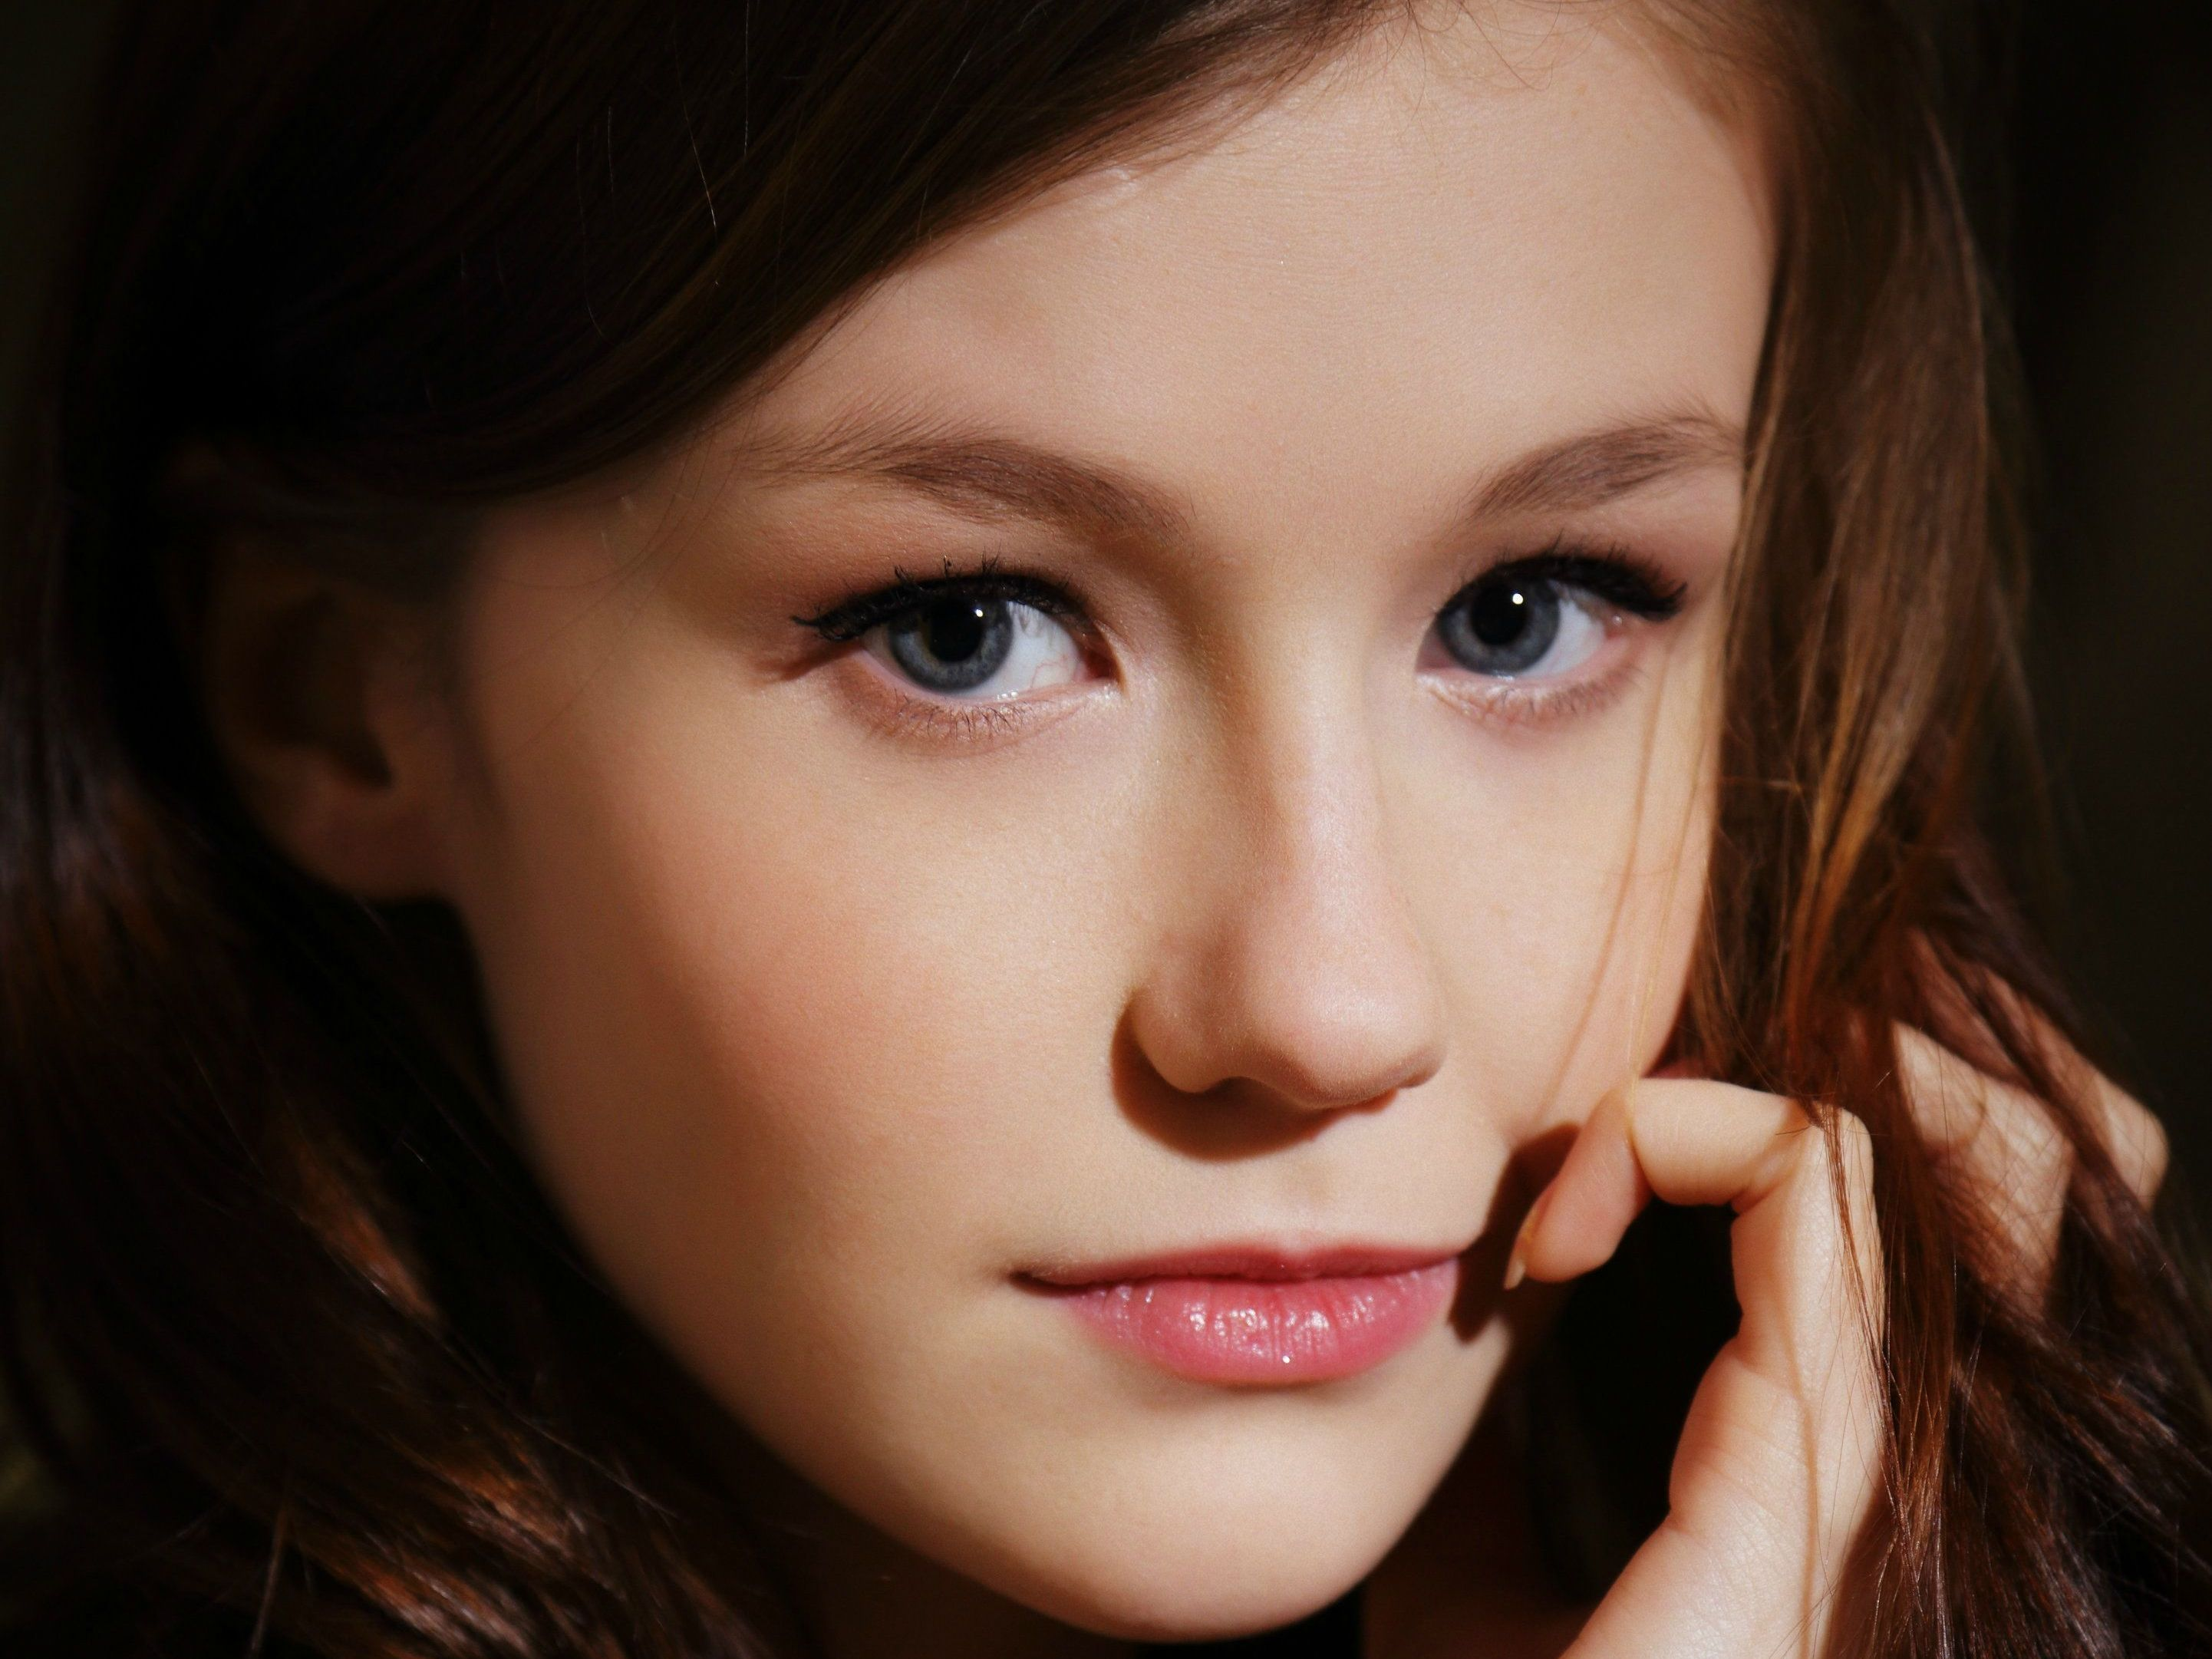 Emily Bloom Wallpapers Images Photos Pictures Backgrounds